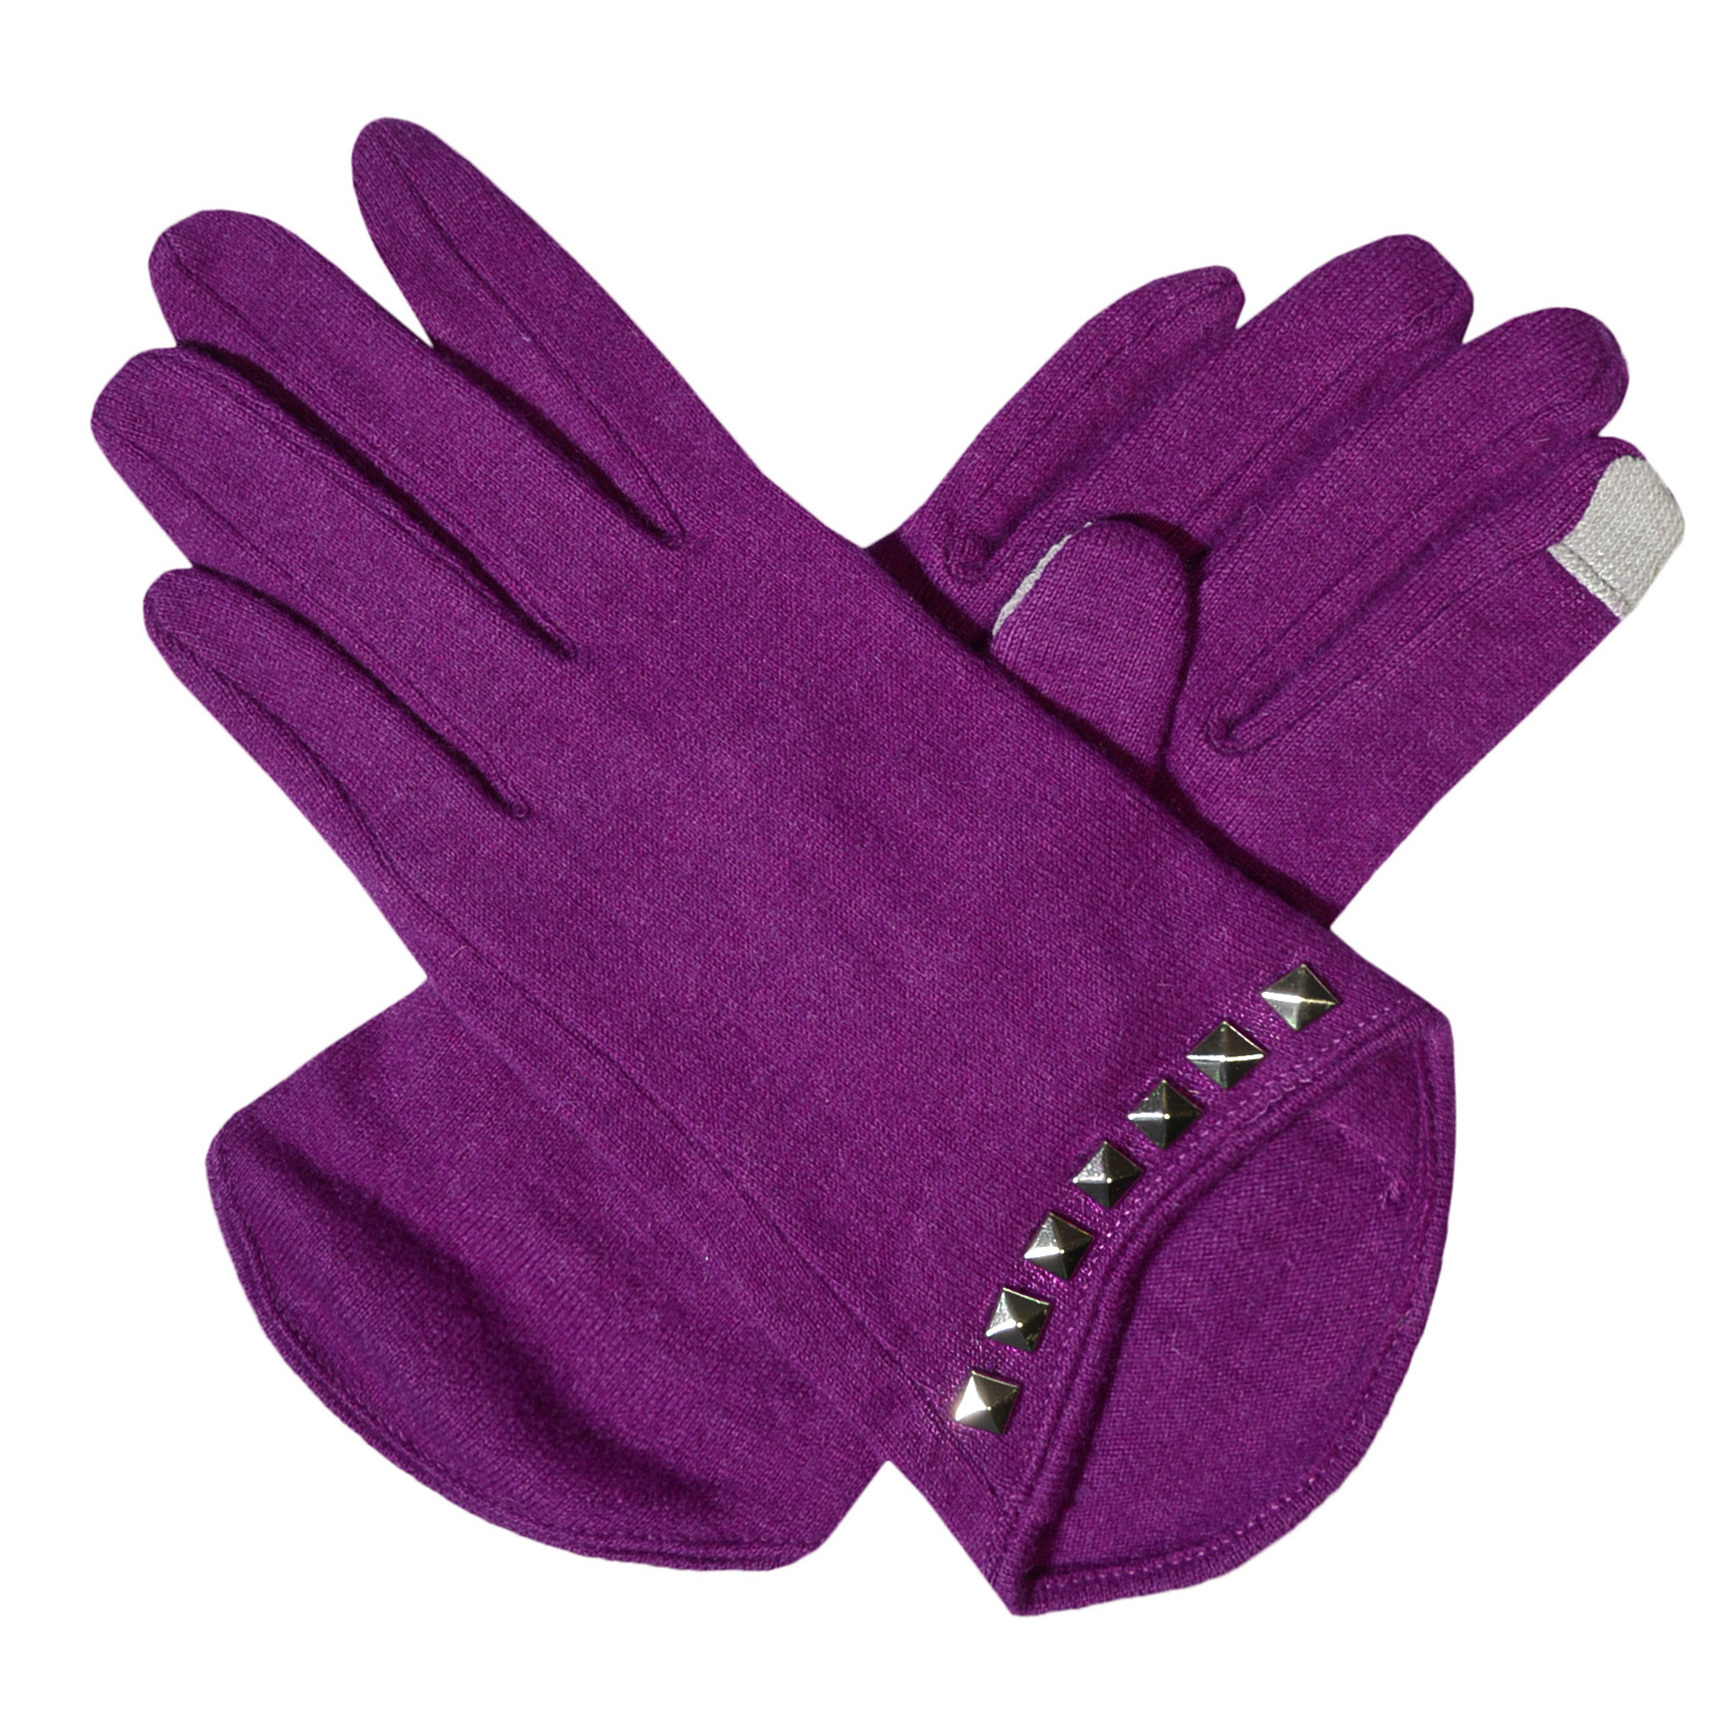 Womens Sudded Touch Screen Gloves Black Grey Purple or Blue Wool Texting Gloves